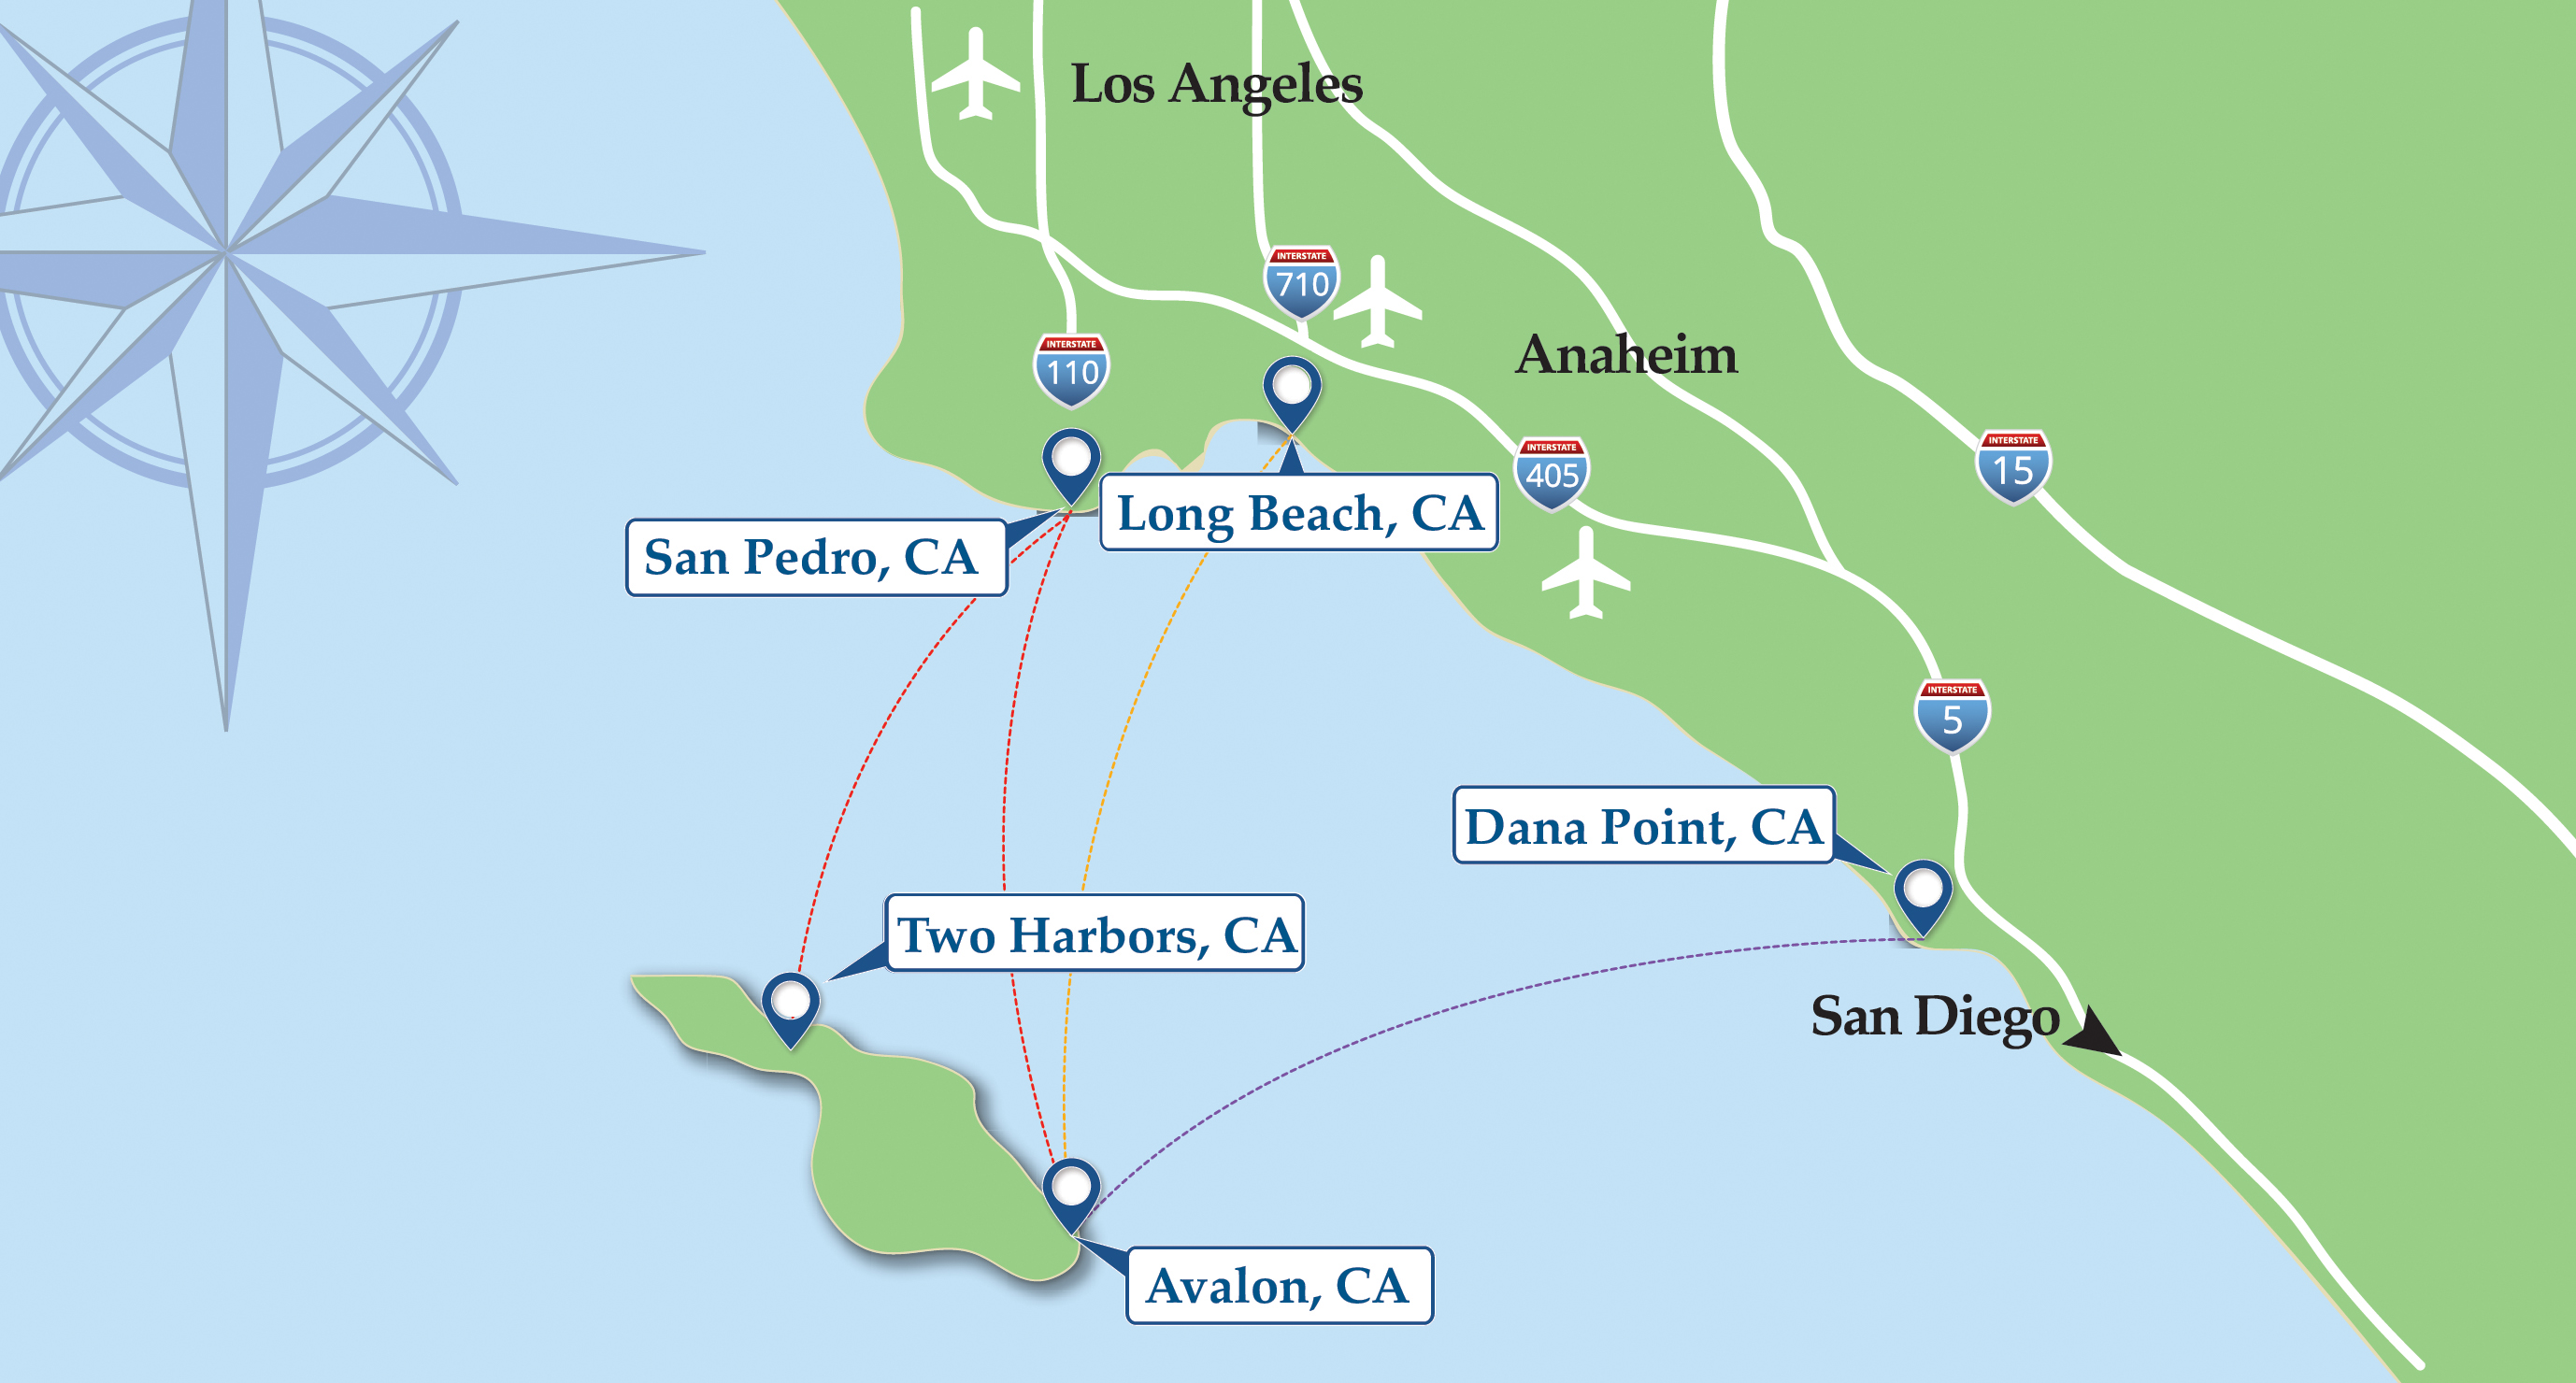 map of Catalina Express ferry route